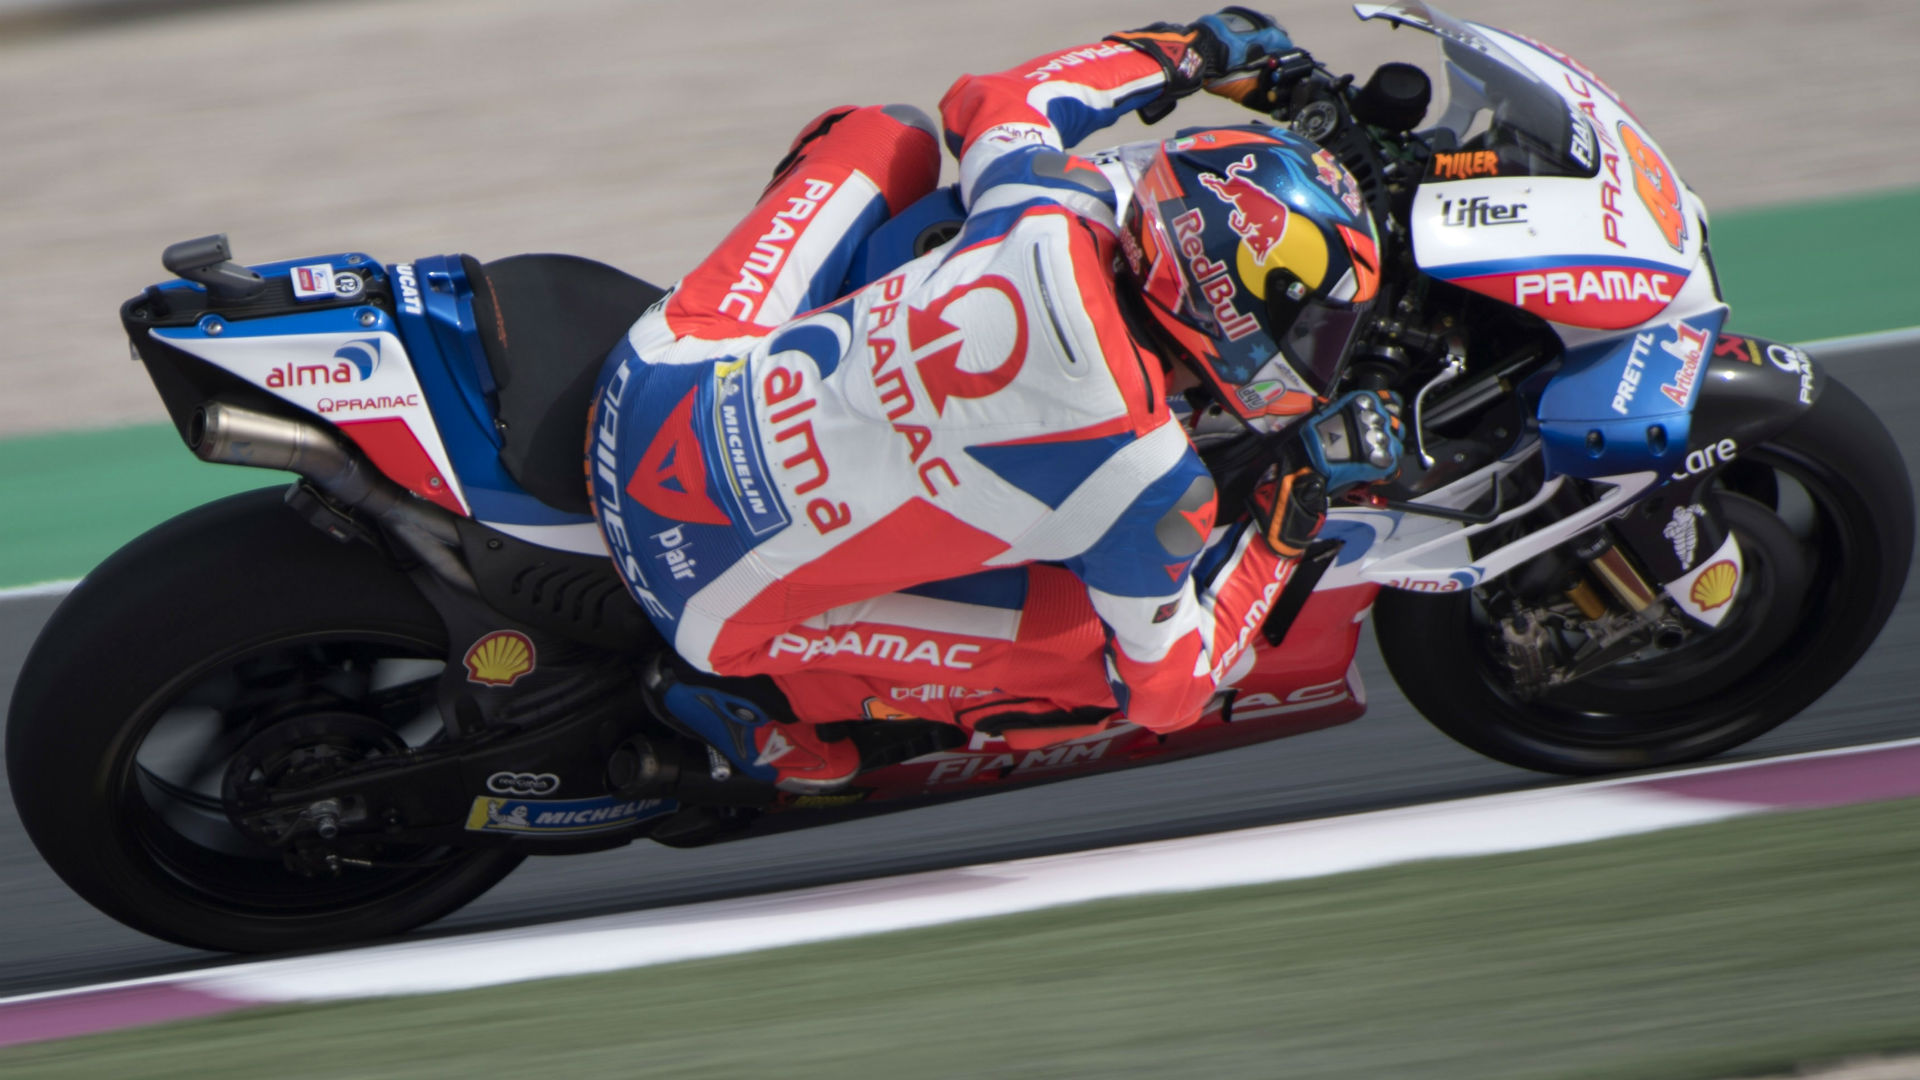 Dani Pedrosa was pipped at the last as Jack Miller left it late to take pole at the Argentina Grand Prix.